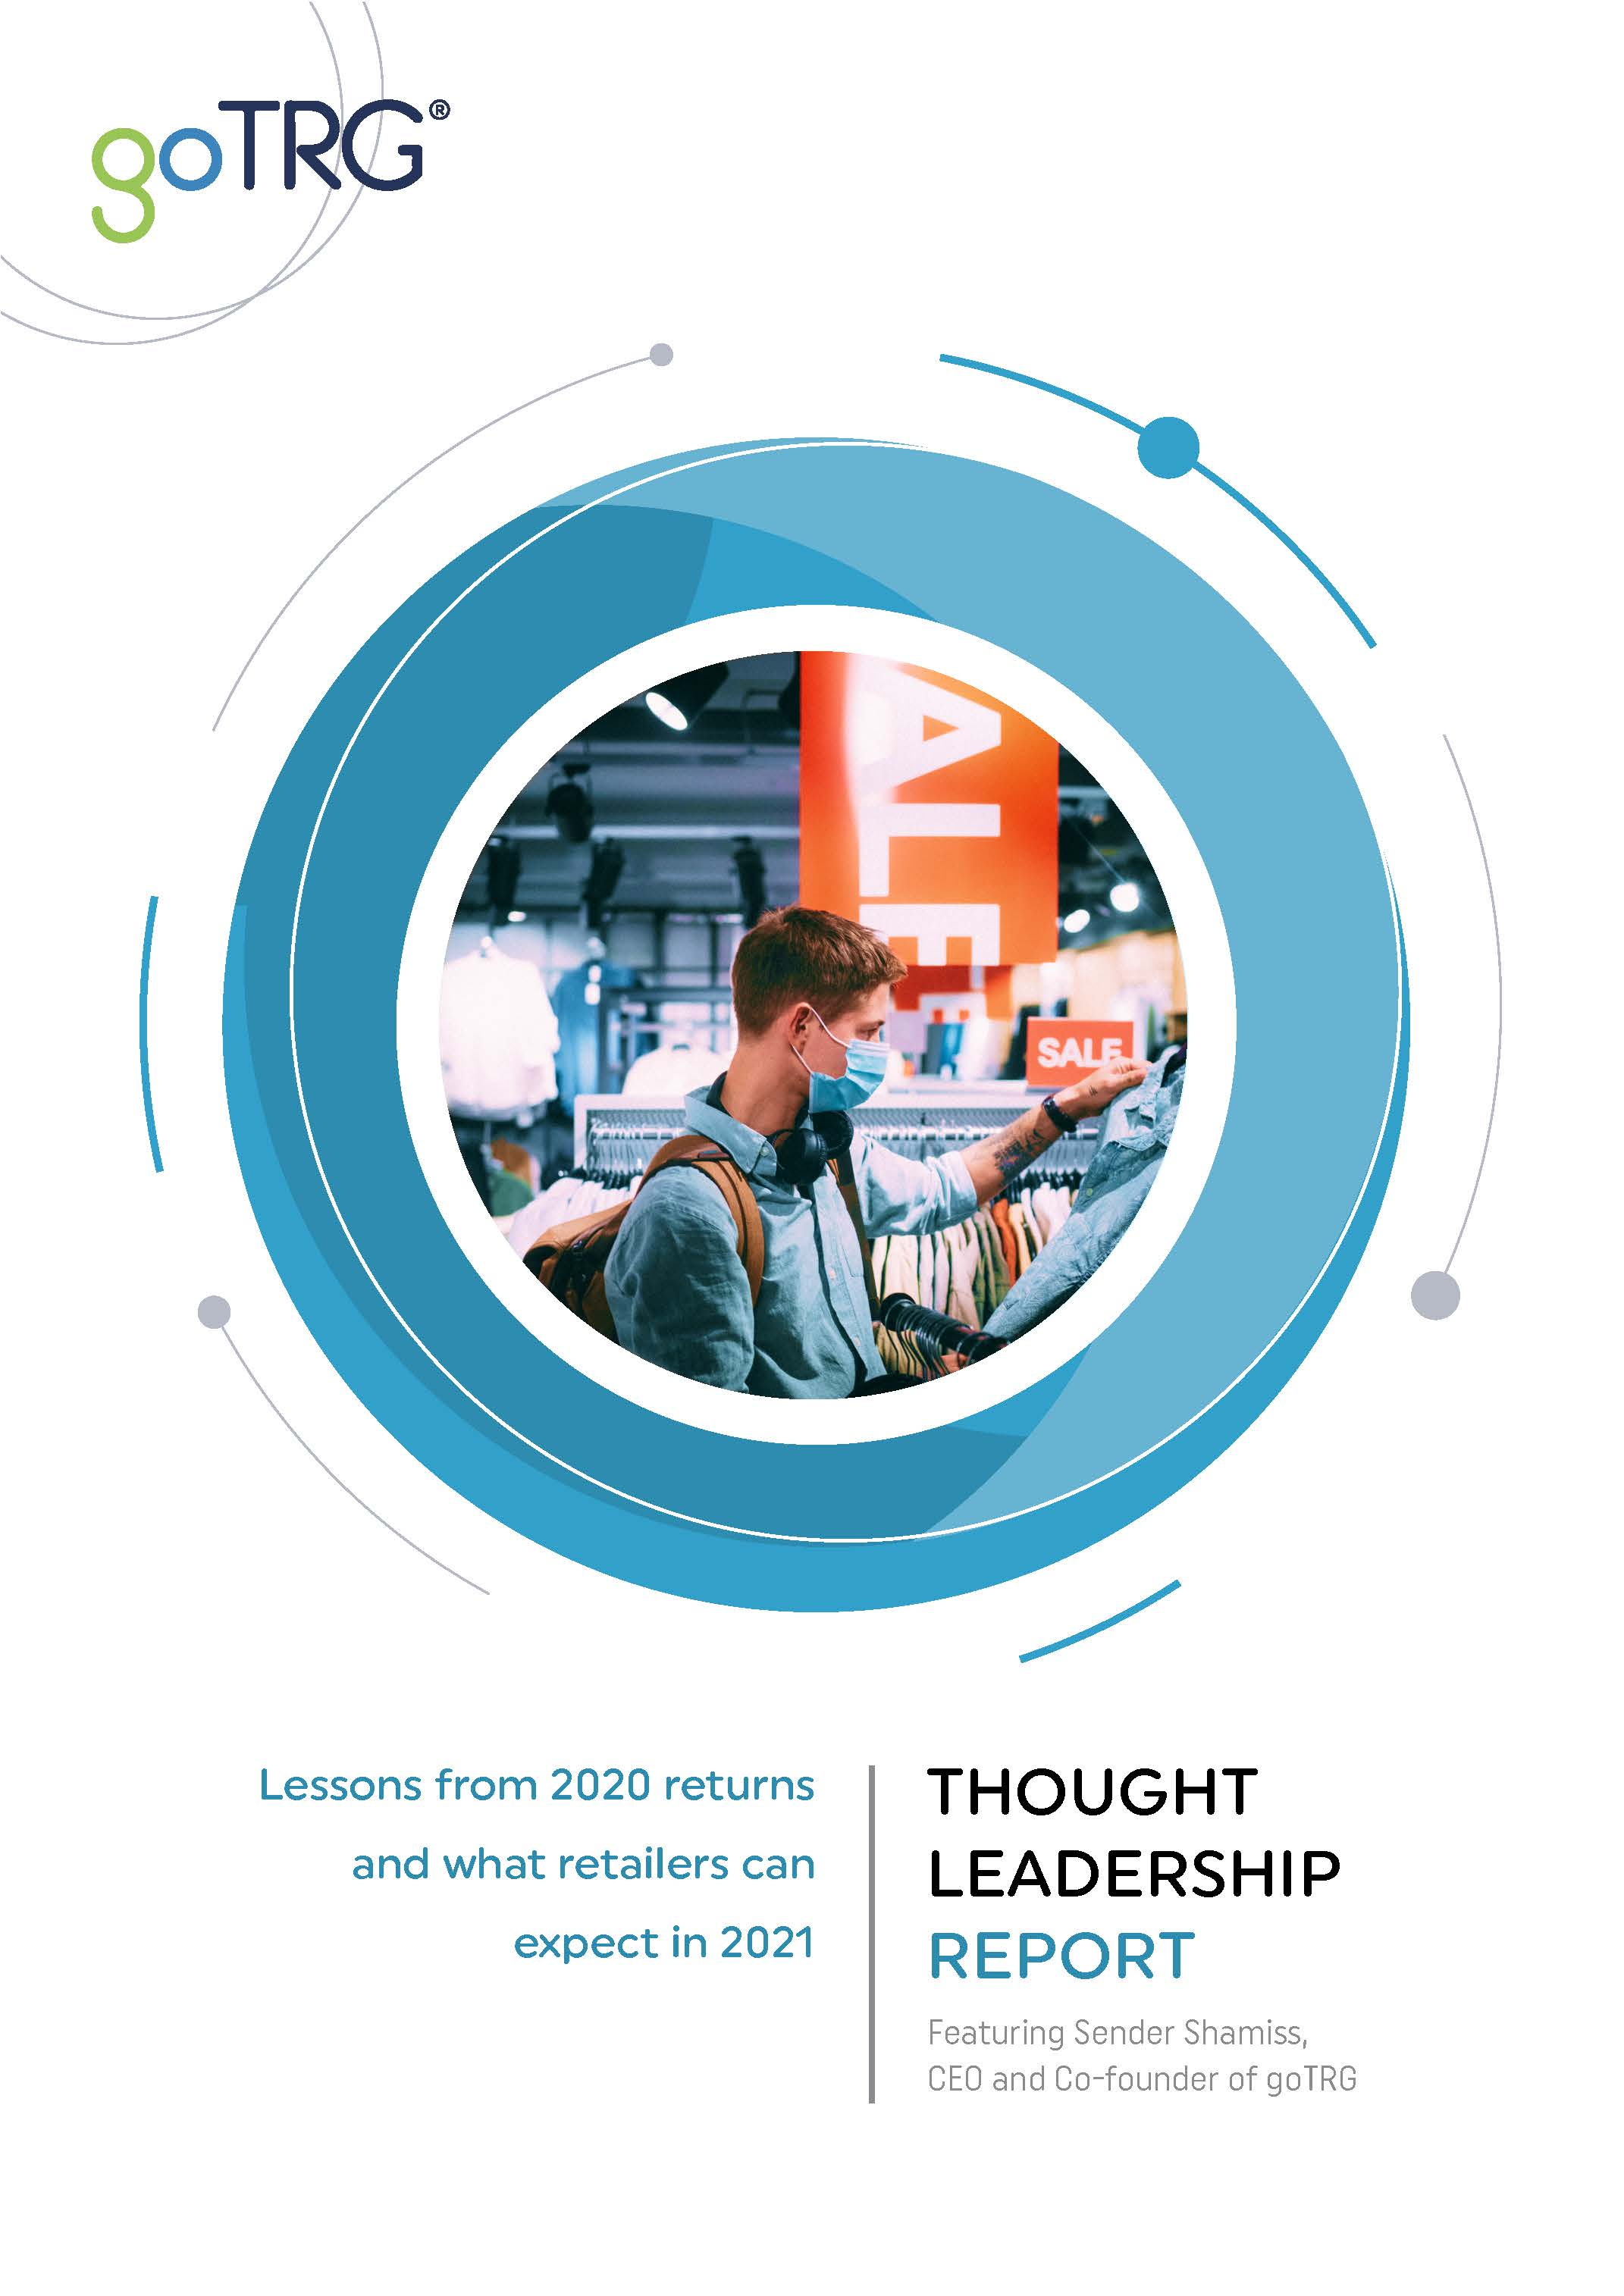 Thought Leadership: Lessons from 2020 returns and what retailers can expect in 2021